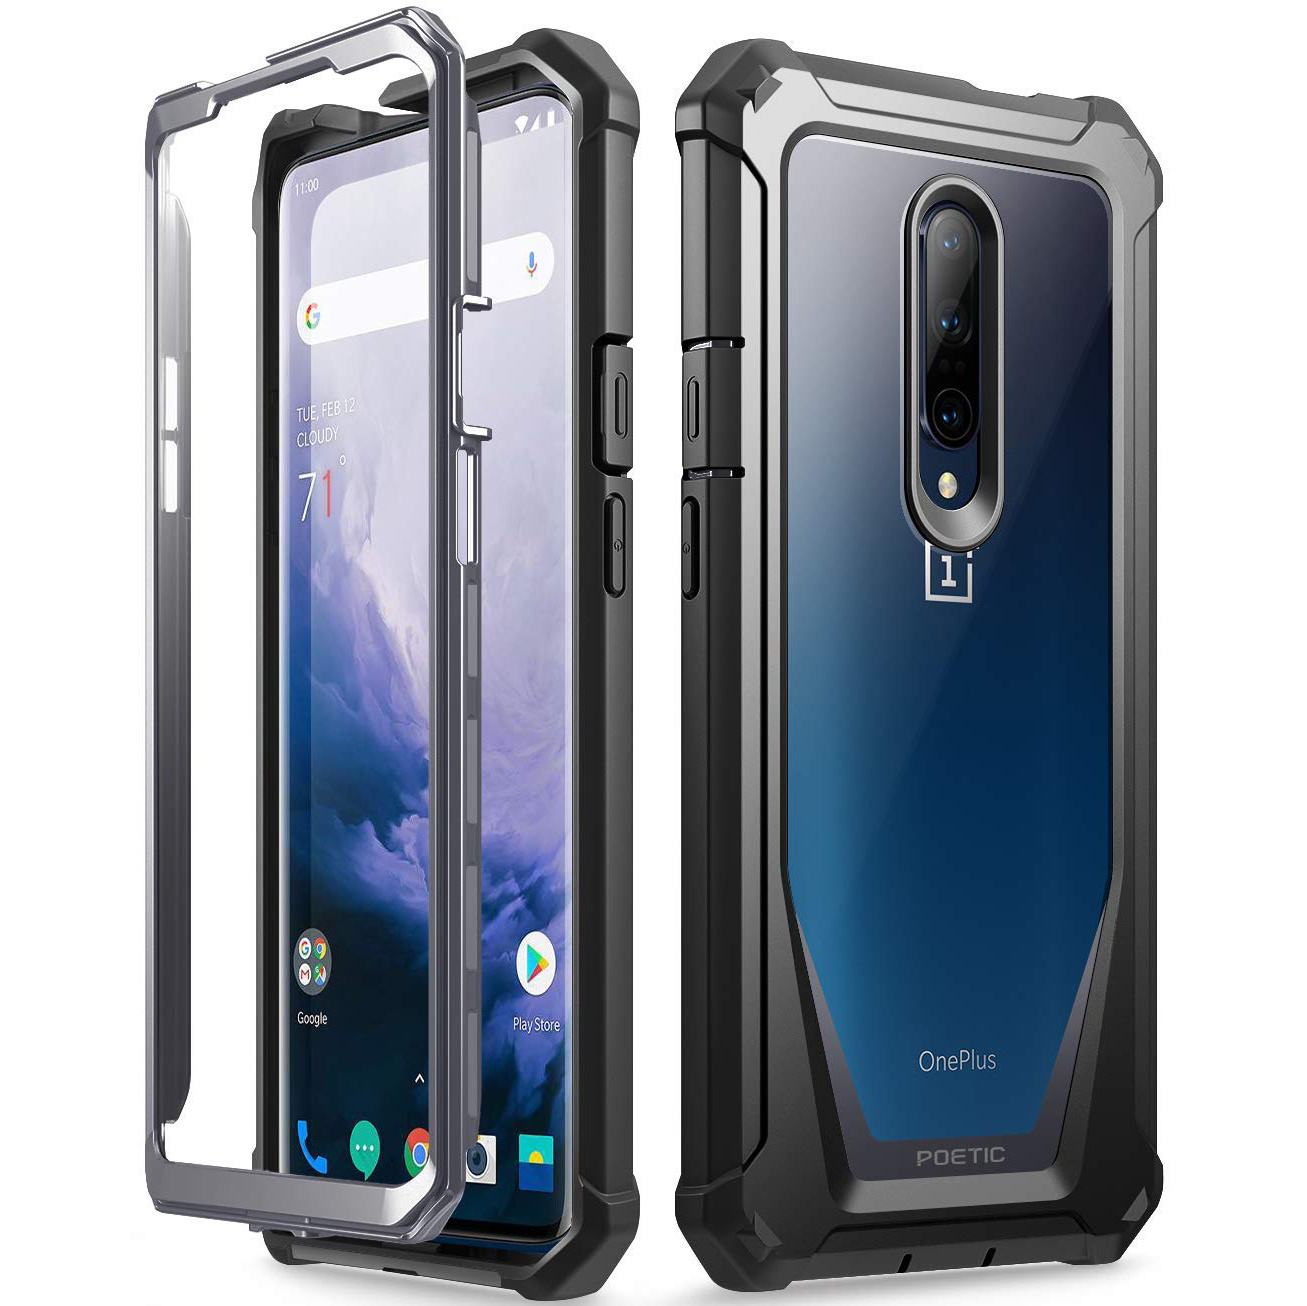 low priced 5a37a e6233 Poetic OnePlus 7 Pro Case Guardian | OnePlus-Shop.nl